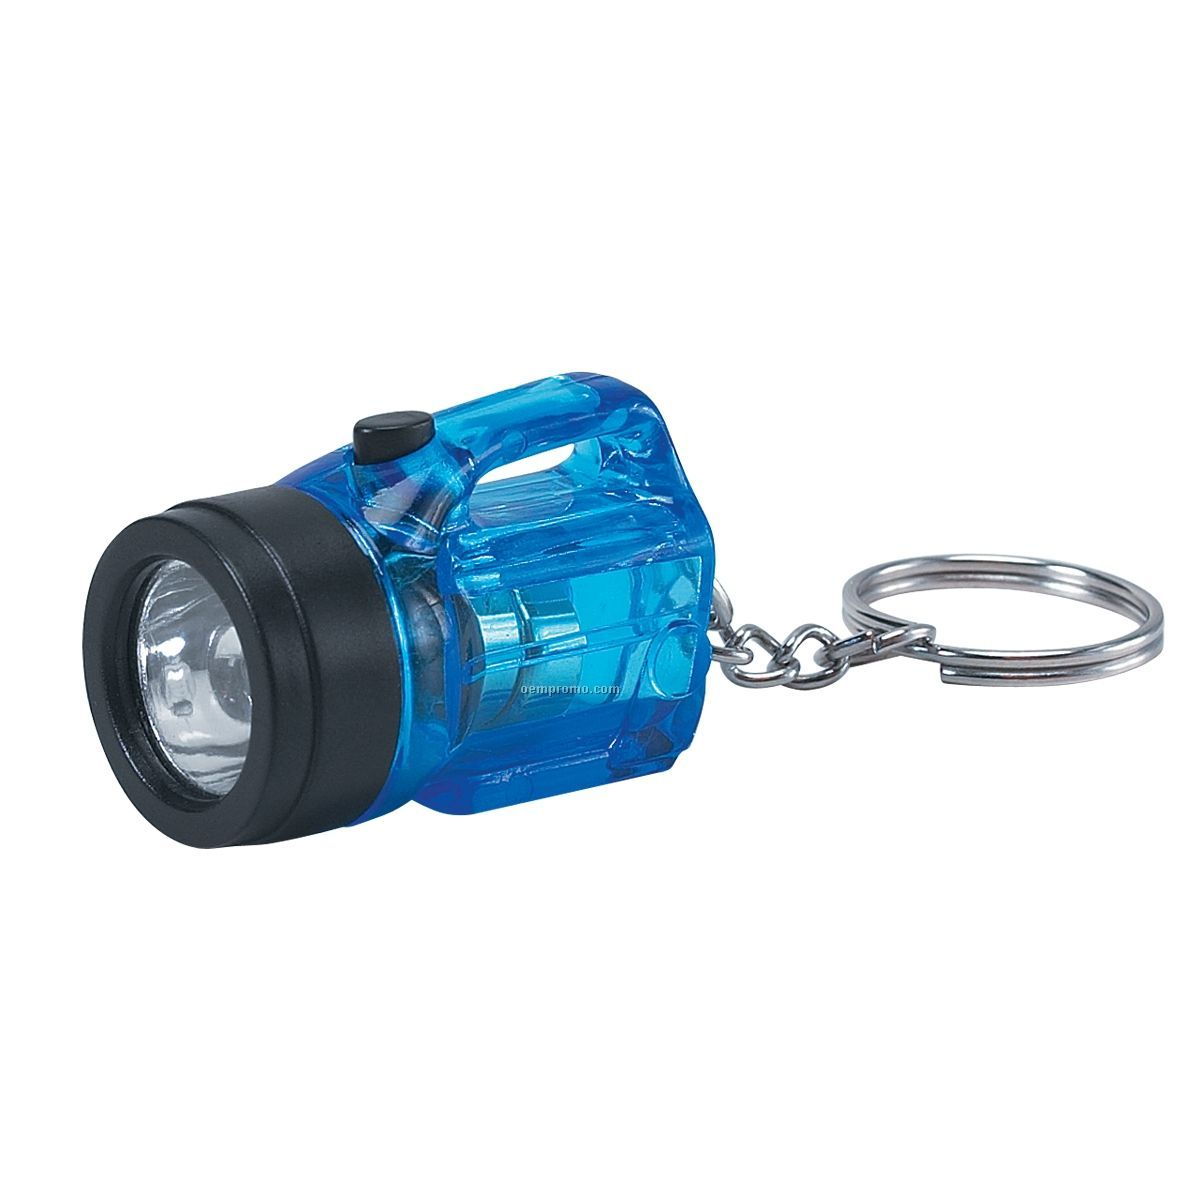 Blue Mini Light Up Lantern Keychain